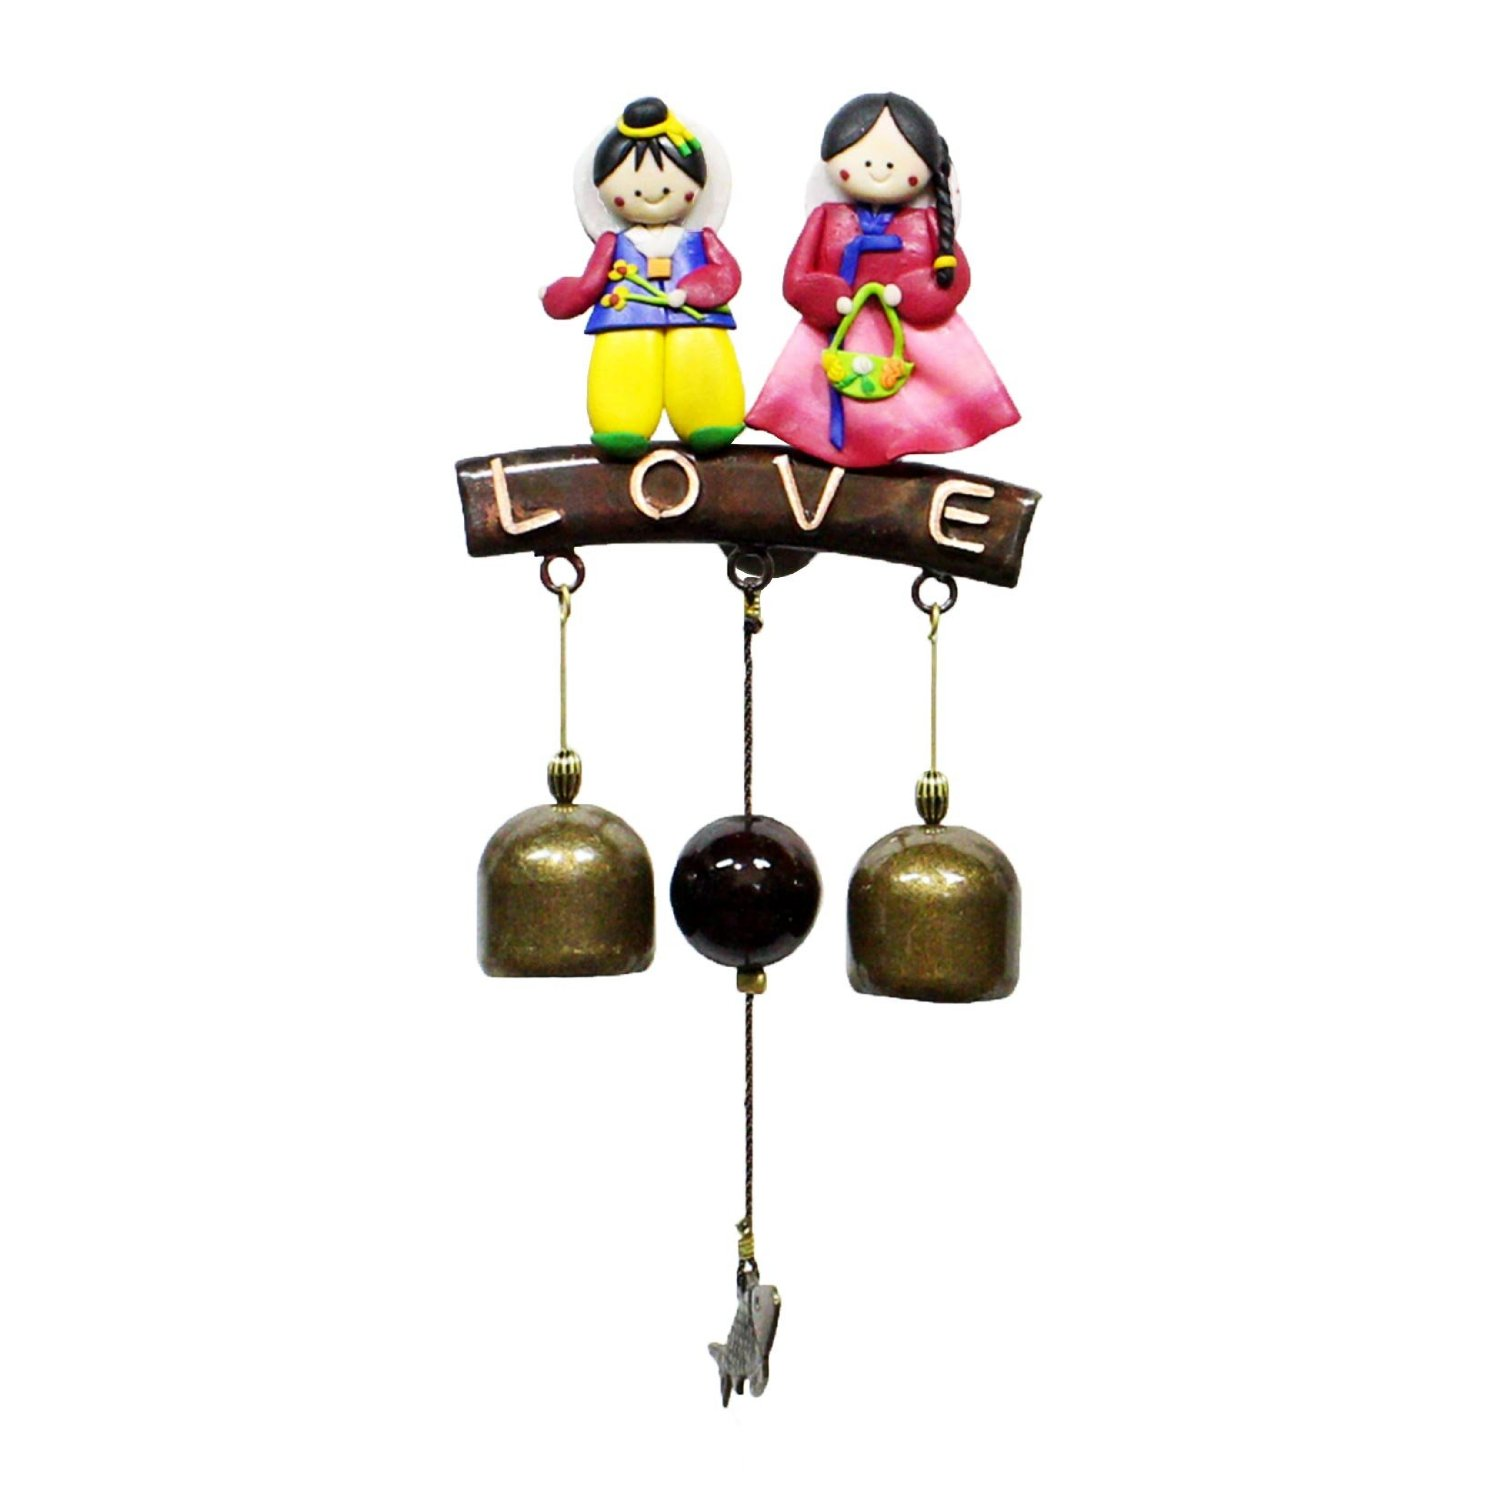 Cheap Store Door Chime Find Deals On Line At How To Add A Second Doorbell Get Quotations Bell Love Kids Dcor Wind Copper Shop Keeper 0203